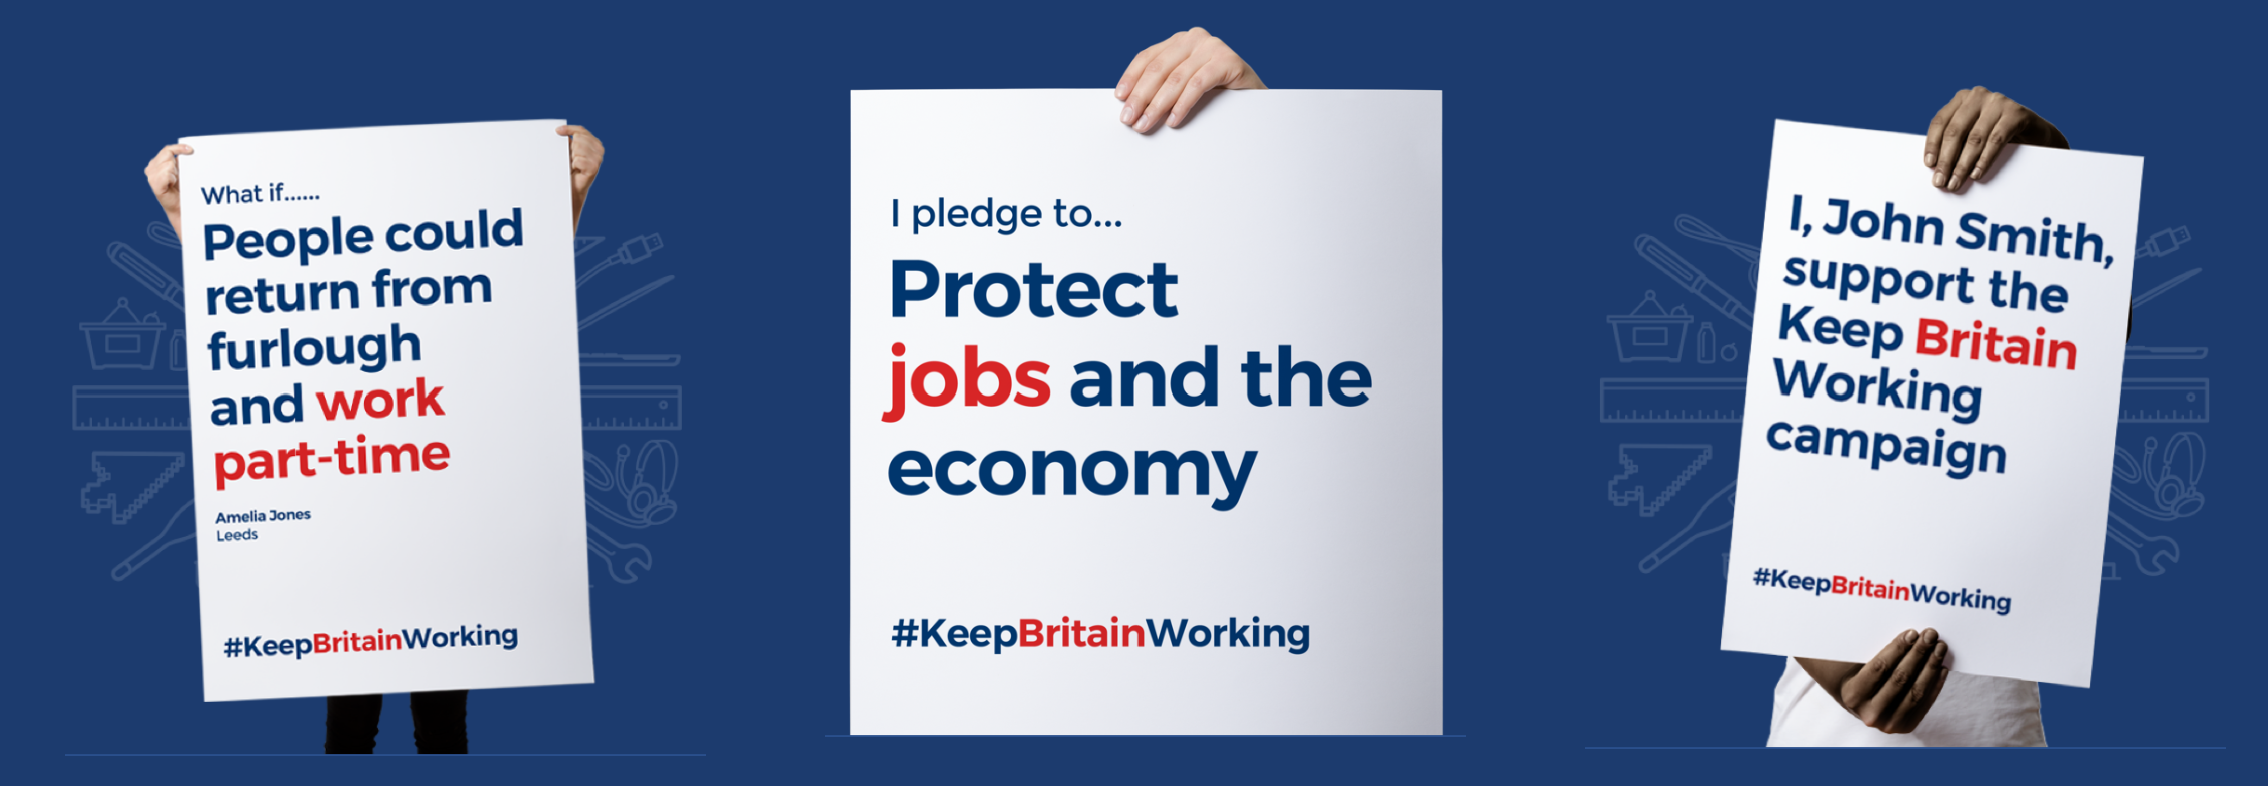 keep britain working - support pledges